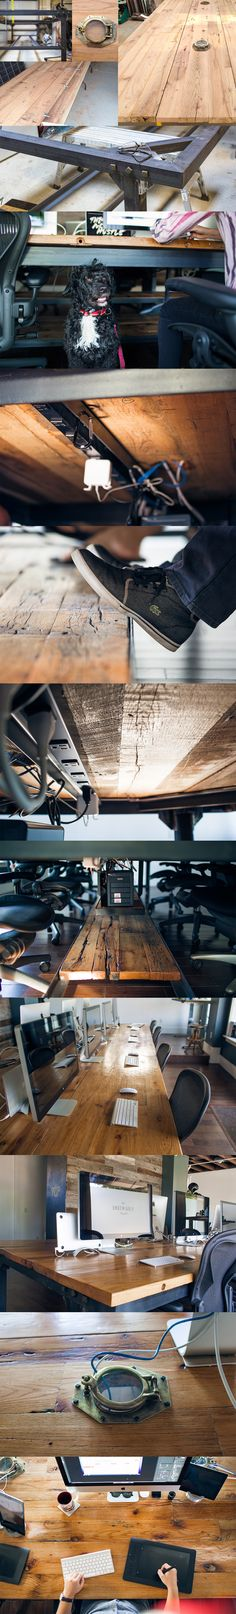 Awesome custom, reclaimed wood office desk for designers. Great Mac setup.